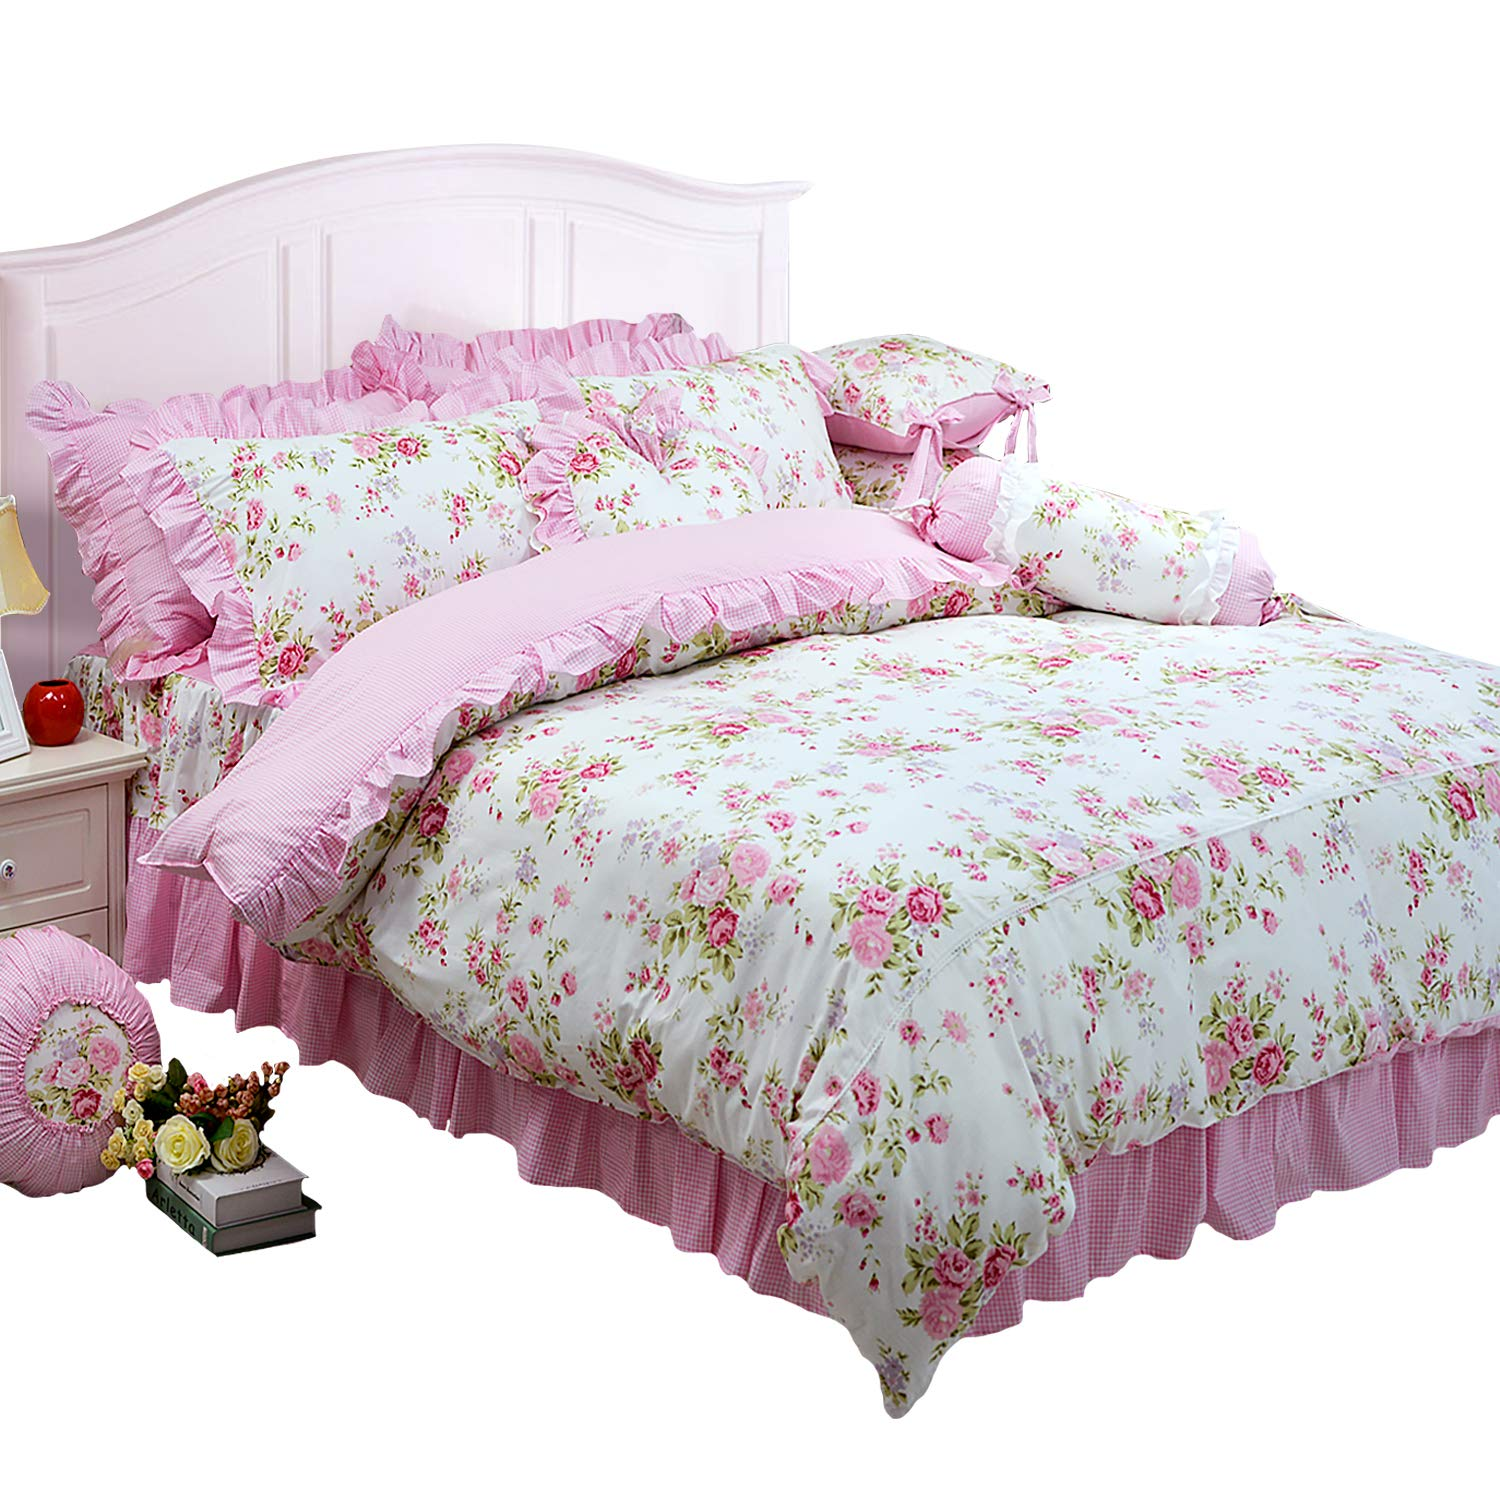 FADFAY Shabby Pink Duvet Cover Set Rose Floral Bedding Collection Elegant Princess Lace Ruffle Quilt Cover Set for Girls 4 Pieces King Size